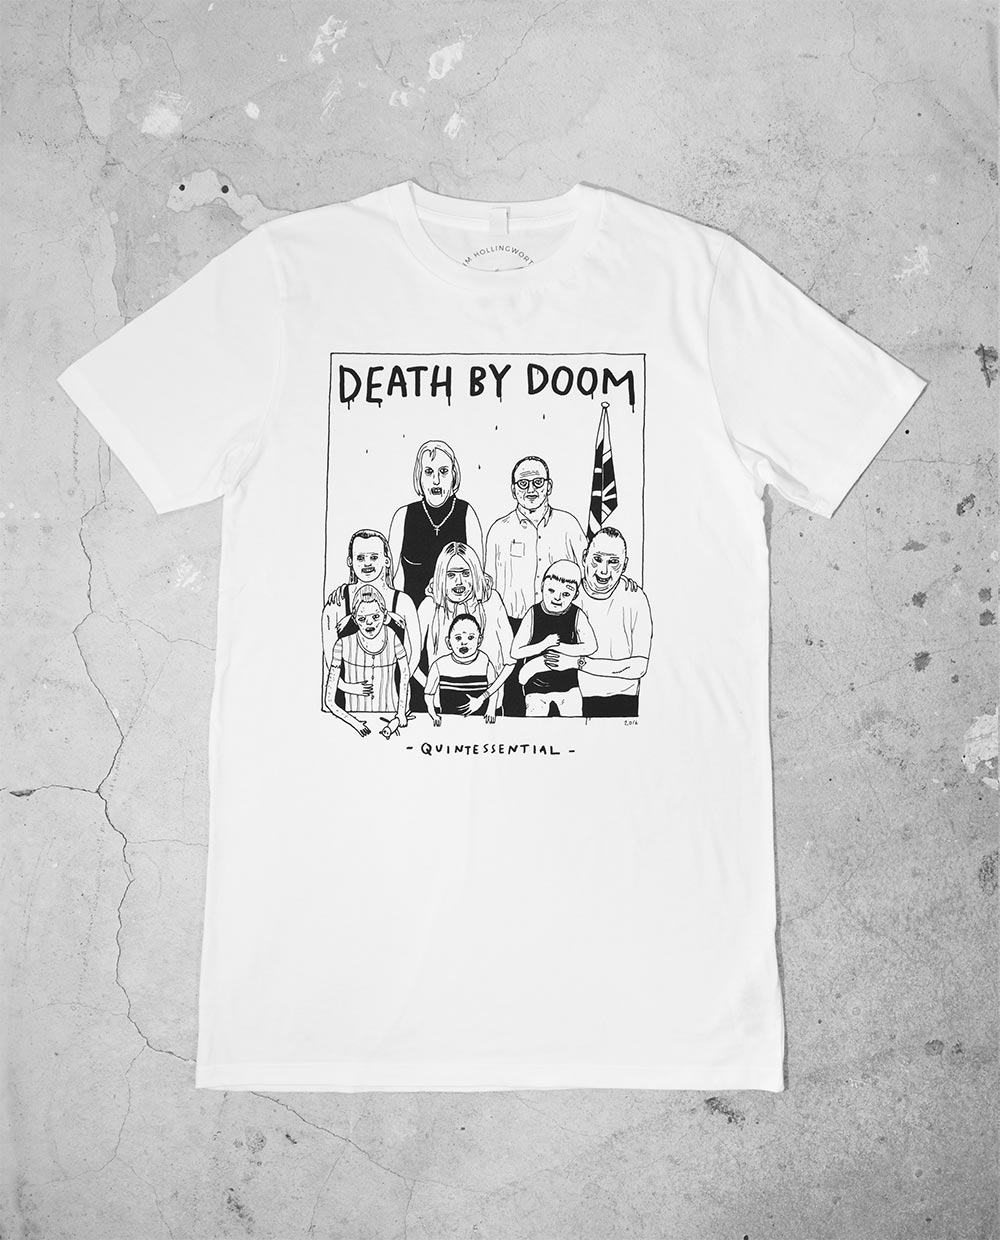 Front of Death By Doom T Shirt by Jimp aka Jim Hollingworth